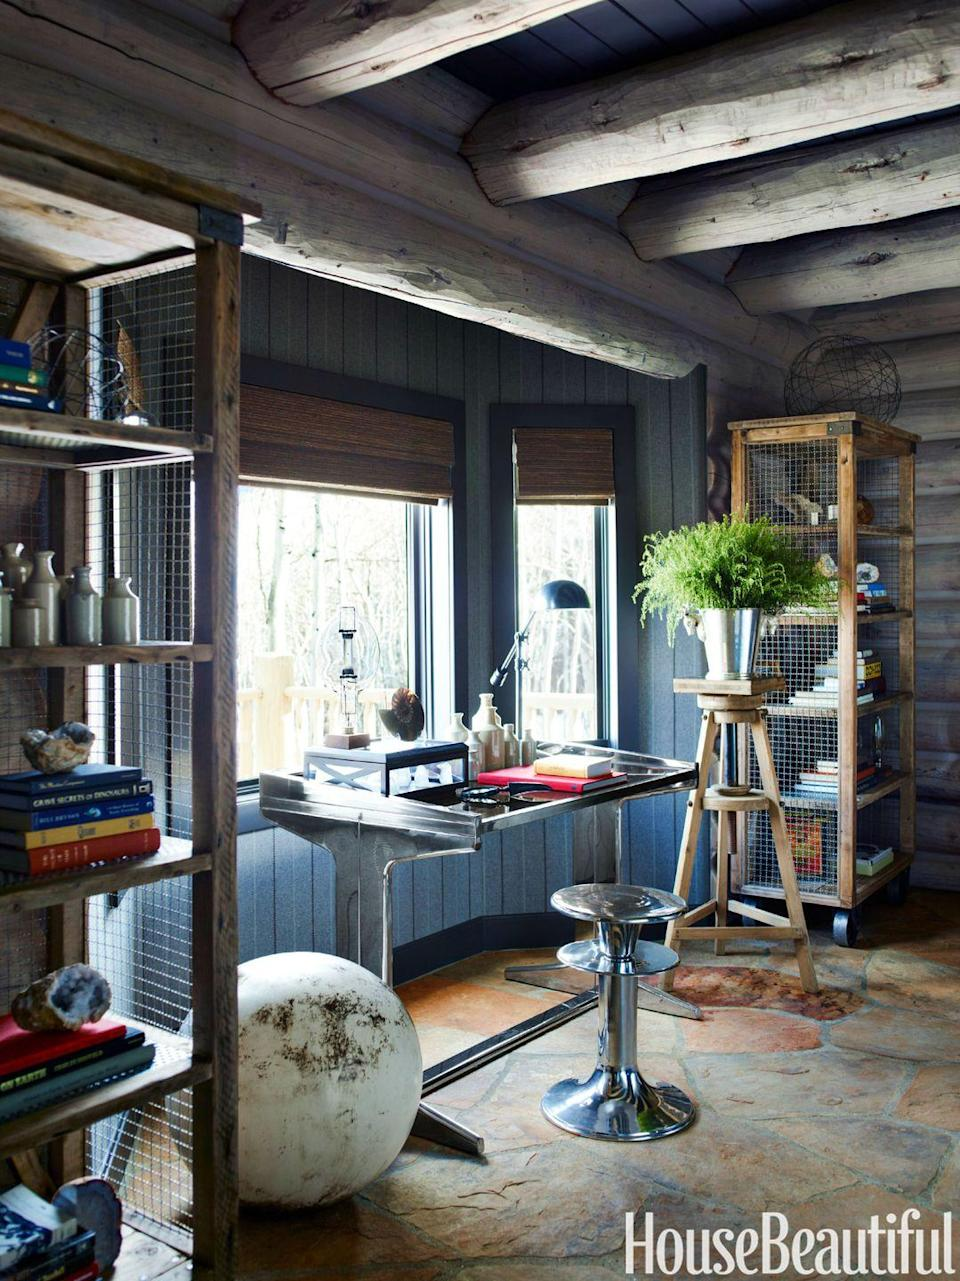 """<p>If your work space is cool, you may be more inclined to actually use it. A vintage aluminum desk and stool create an industrial vibe in this <a href=""""https://www.housebeautiful.com/design-inspiration/house-tours/g2928/thom-filicia-colorado-cabin/"""" rel=""""nofollow noopener"""" target=""""_blank"""" data-ylk=""""slk:Colorado cabin"""" class=""""link rapid-noclick-resp"""">Colorado cabin</a>'s study. Chicken-wire bookcases add a rustic touch to the room.</p>"""